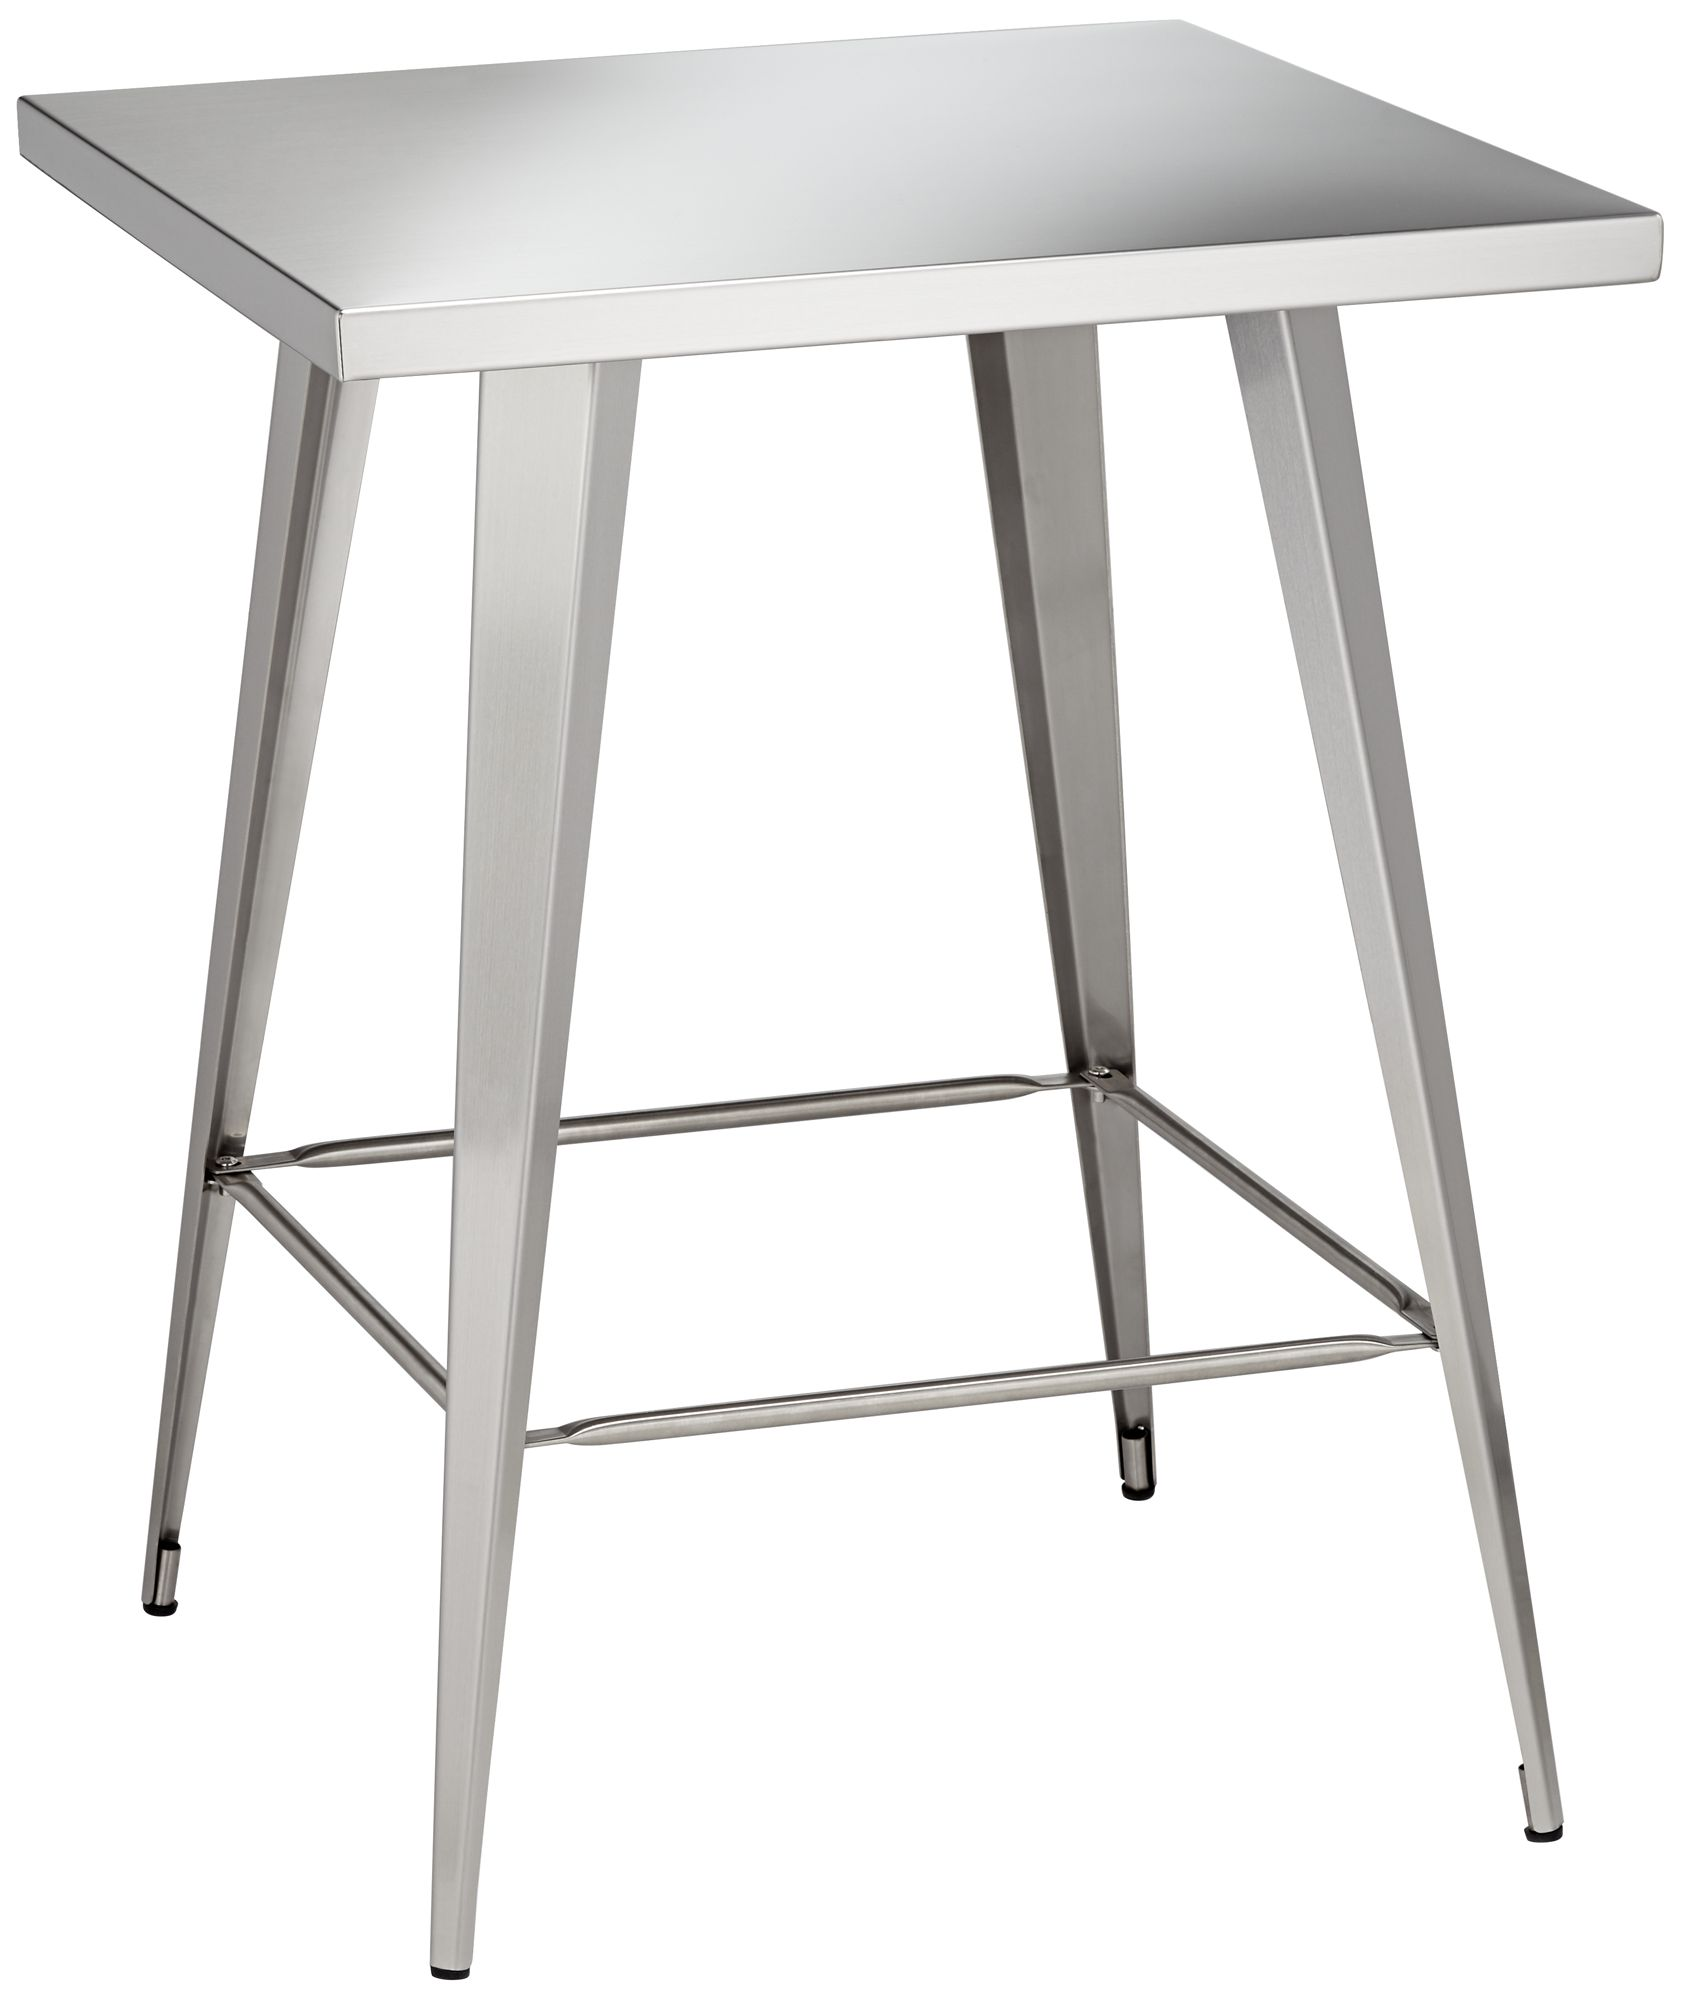 Captivating Penny Stainless Steel Counter Table